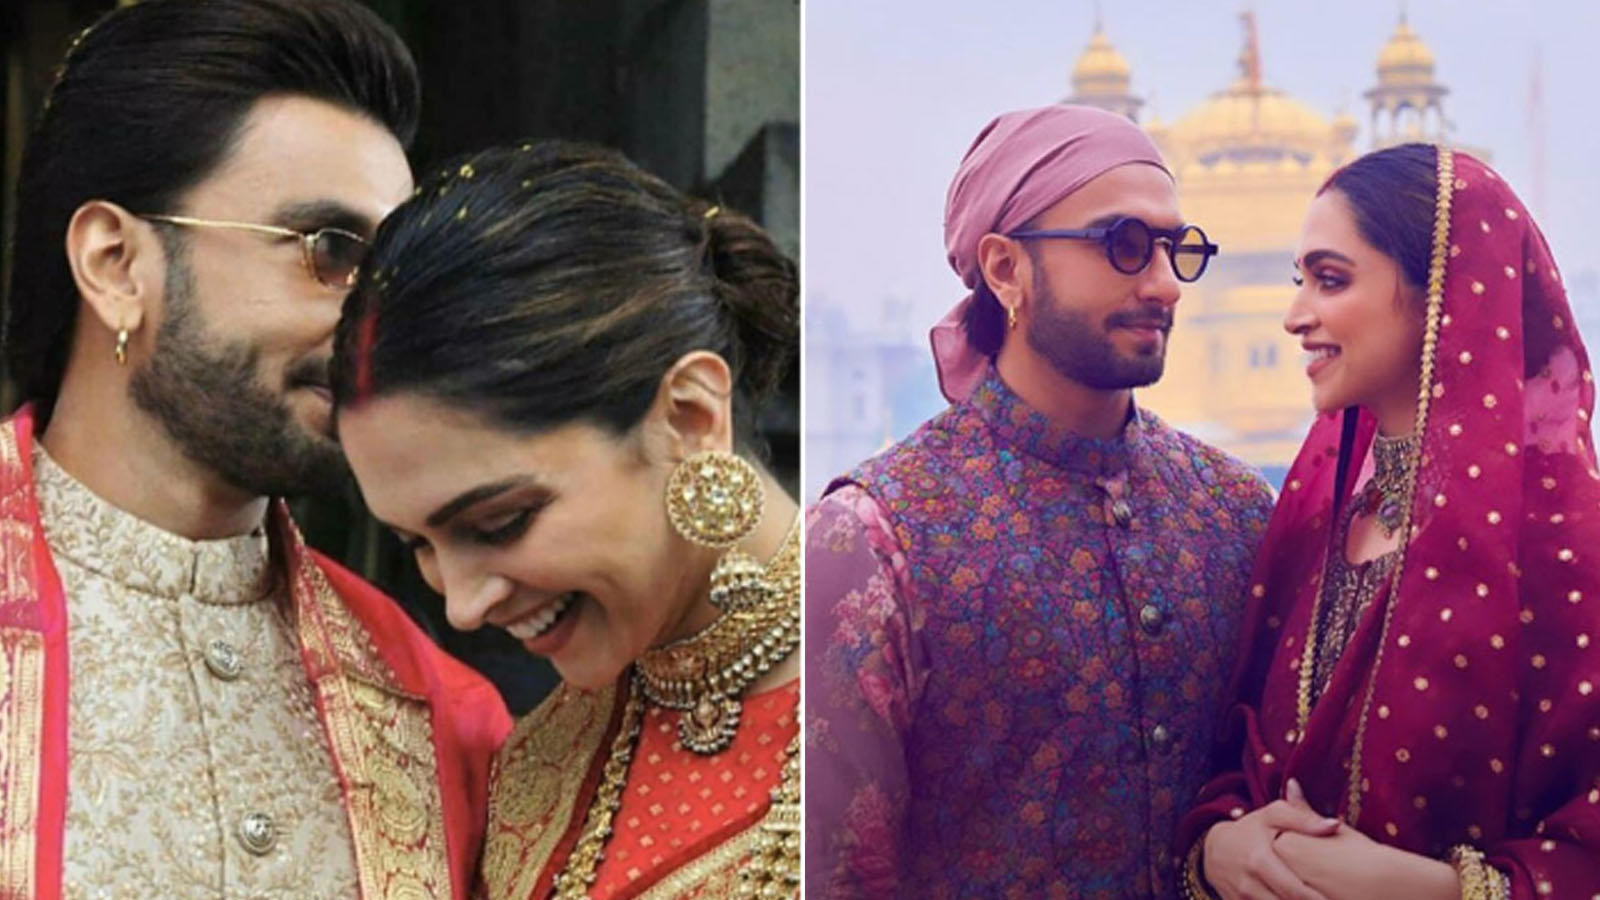 deepika-padukones-wedding-anniversary-looks-you-can-take-inspiration-from